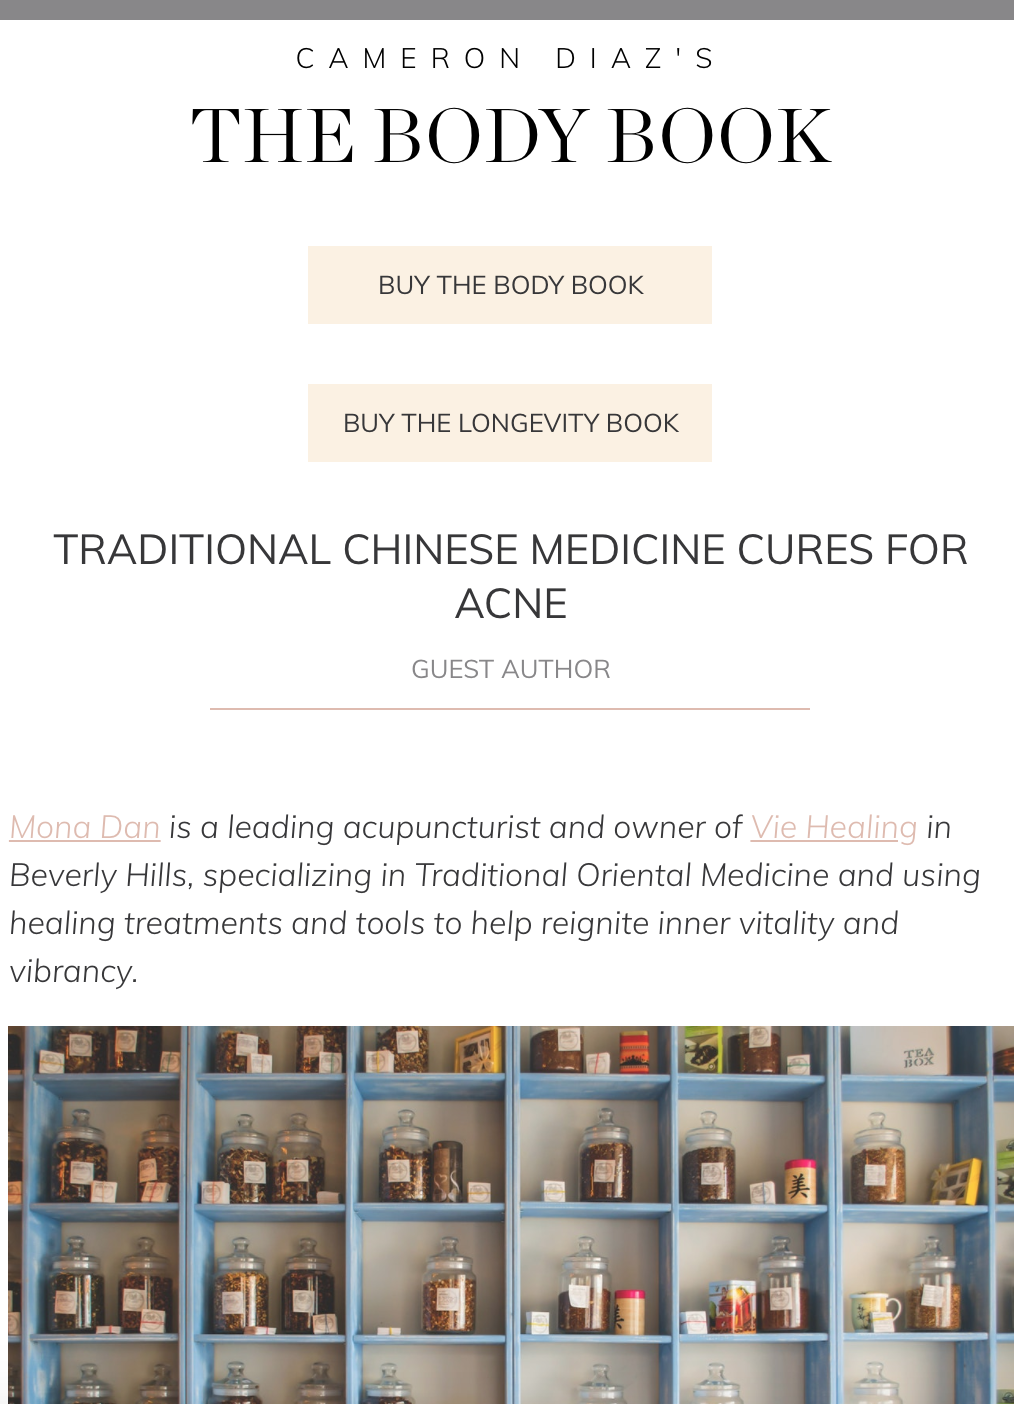 TRADITIONAL CHINESE MEDICINE CURES FOR ACNE